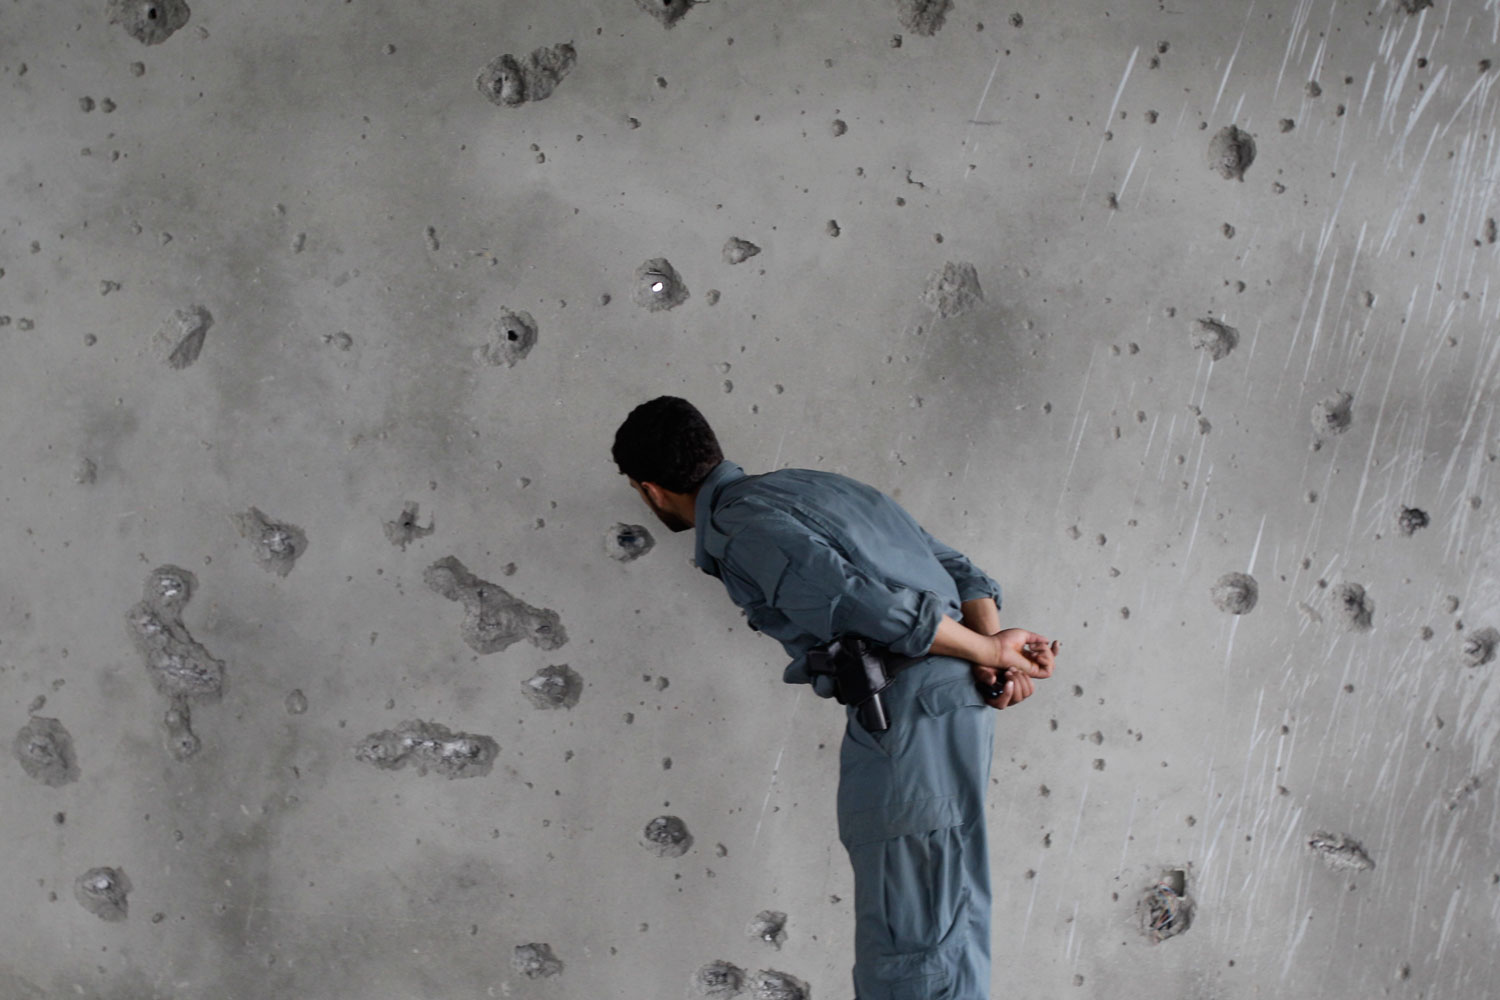 September 14, 2011. An Afghan policeman checks a shattered wall as he visits a building which was occupied by Taliban militants in Kabul, Afghanistan. A 20-hour insurgent attack in the heart of Kabul ended after a final volley of helicopter gunfire. Afghan police ferreted out and killed the last few assailants who had taken over a half-built, downtown building, to fire on the nearby U.S. Embassy and NATO compounds.